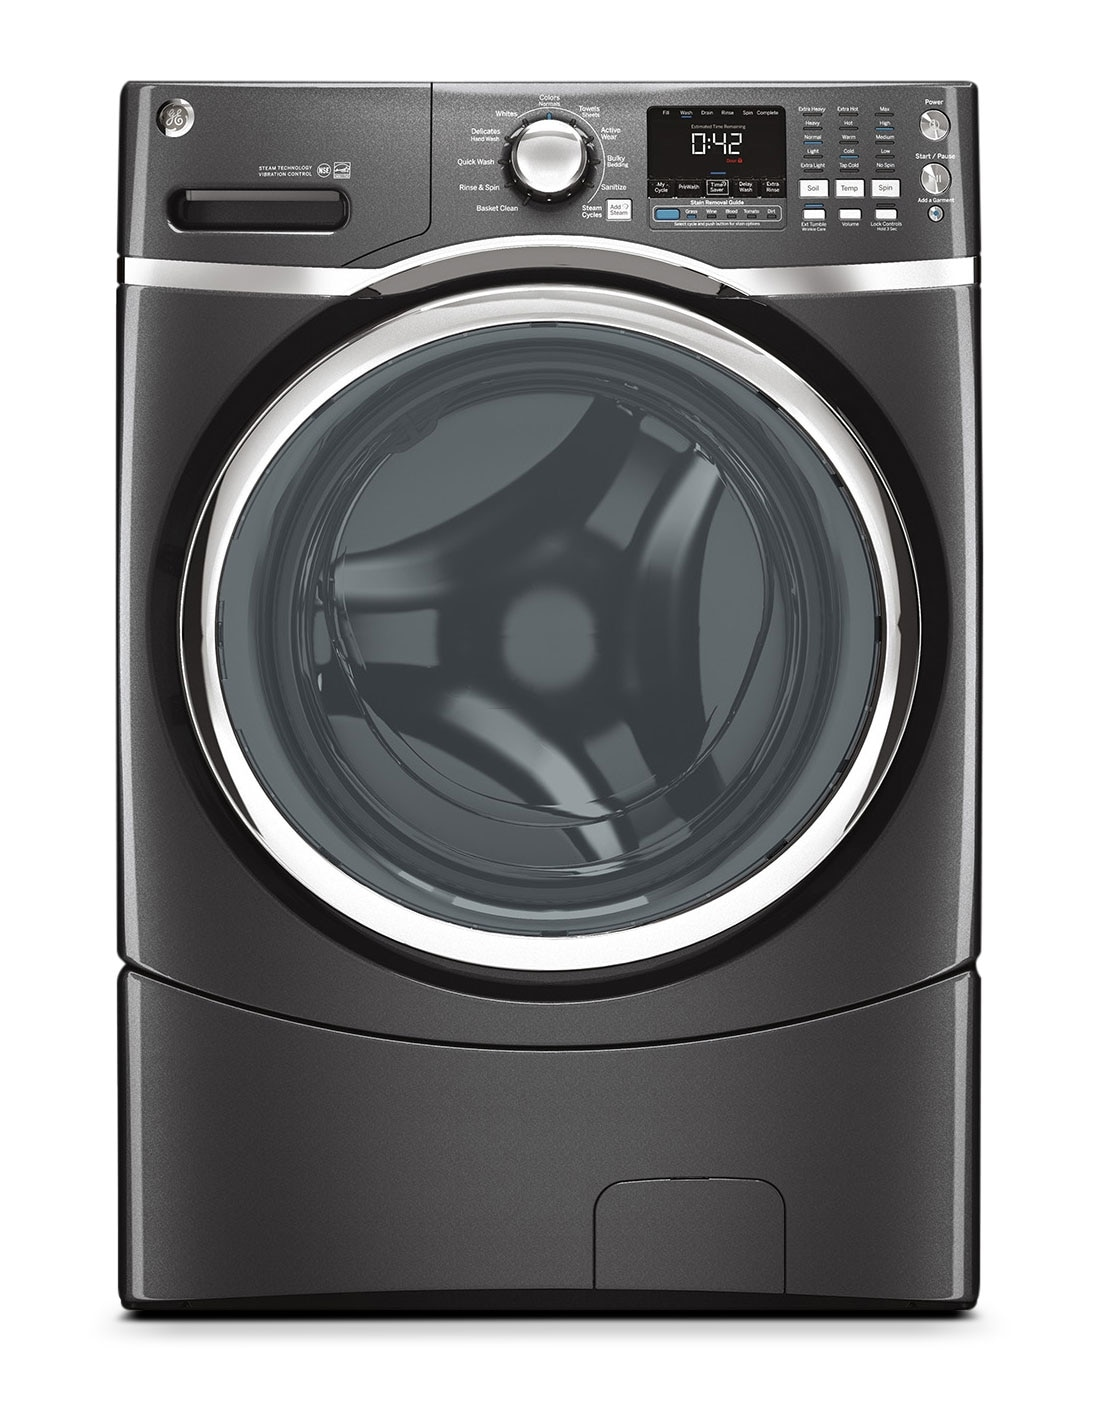 GE Diamond Grey Front-Load Washer (5.0 Cu. Ft. IEC) - GFWS1705HDG